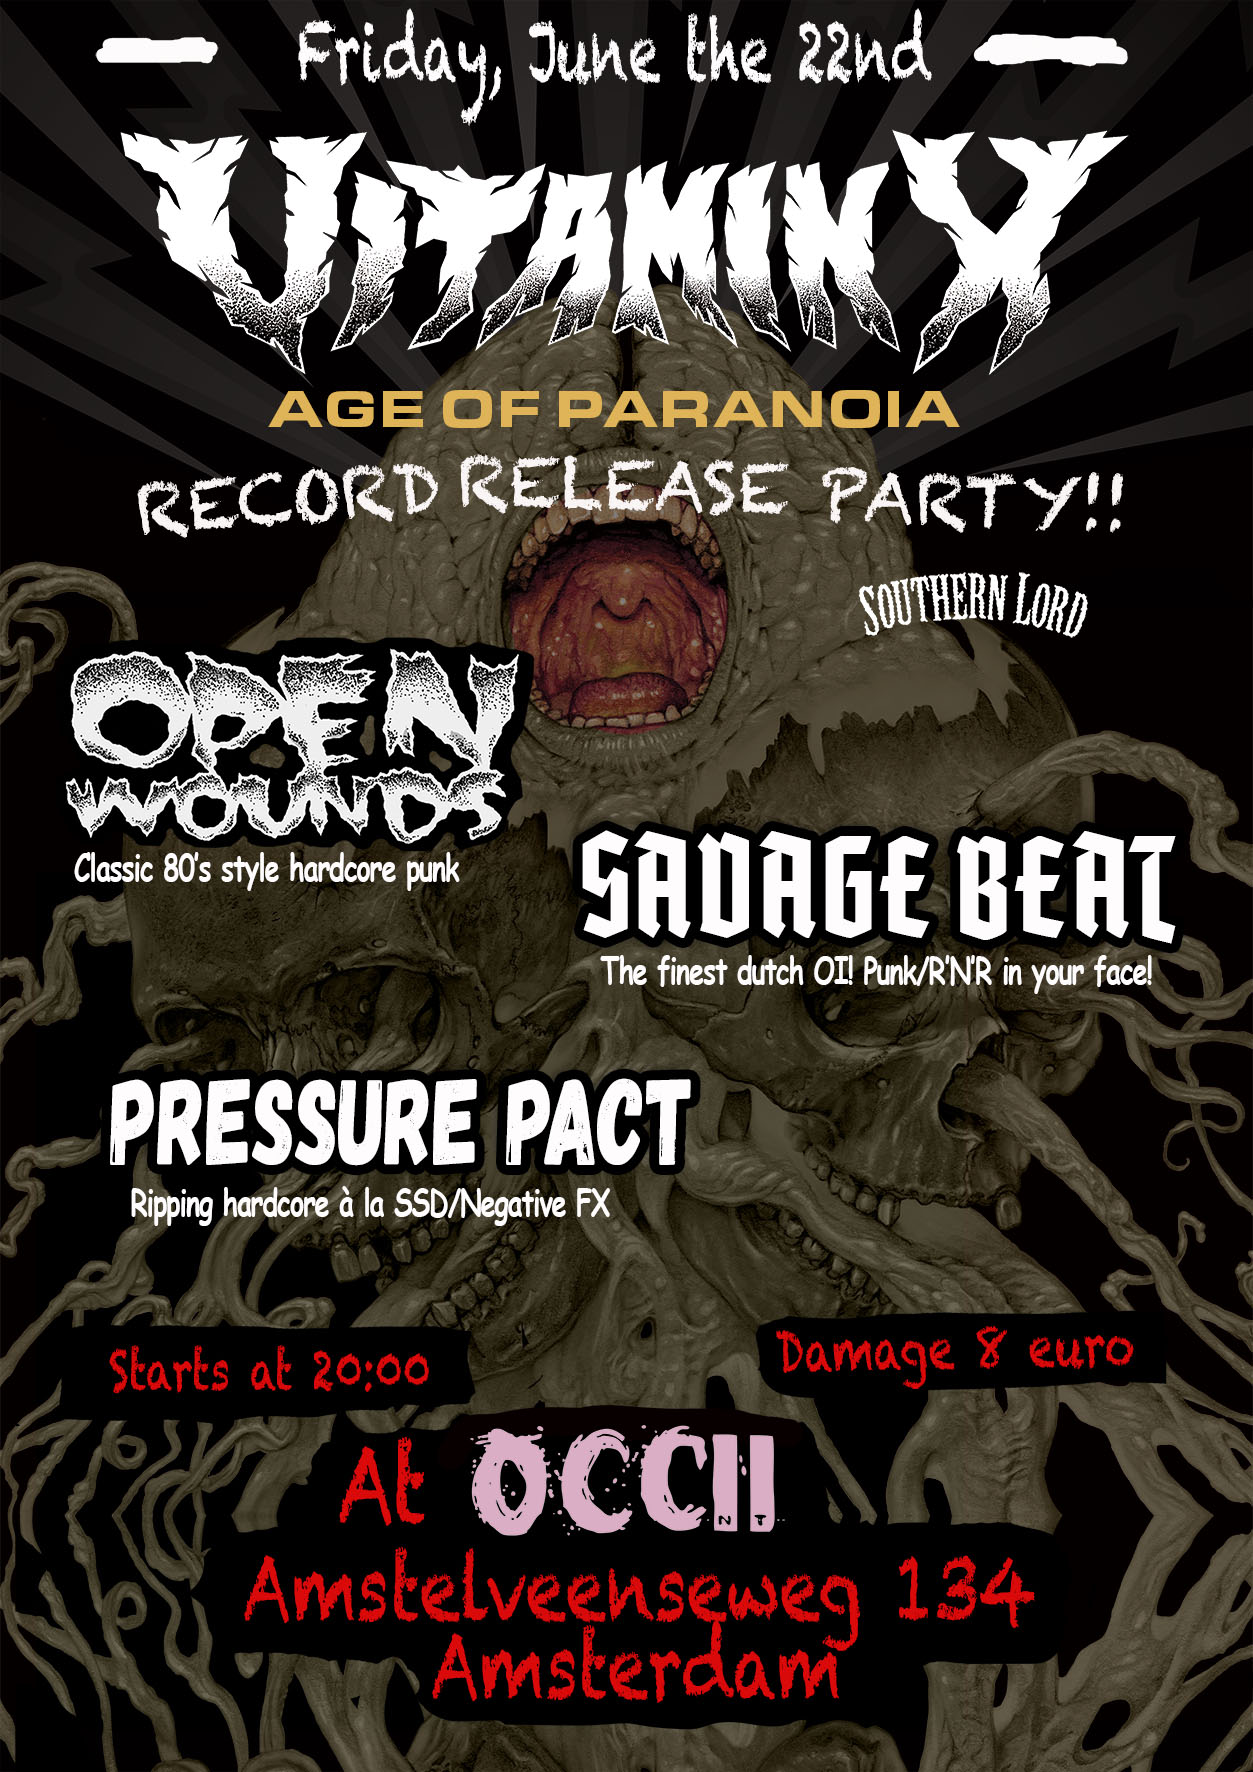 VITAMIN X + OPEN WOUNDS + SAVAGE BEAT+ PRESSURE PACT